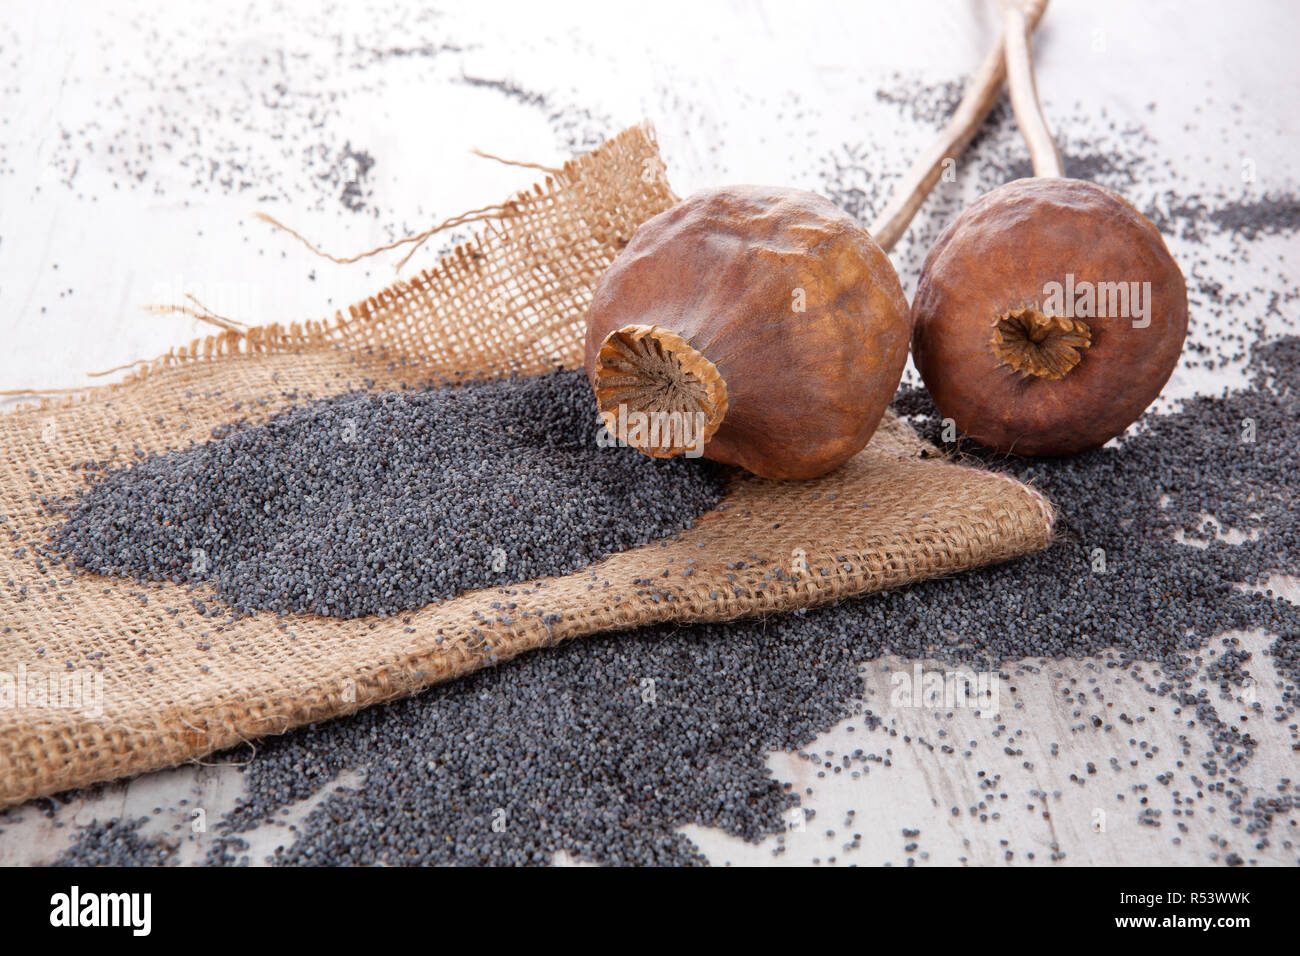 Dry poppy heads and seeds. - Stock Image